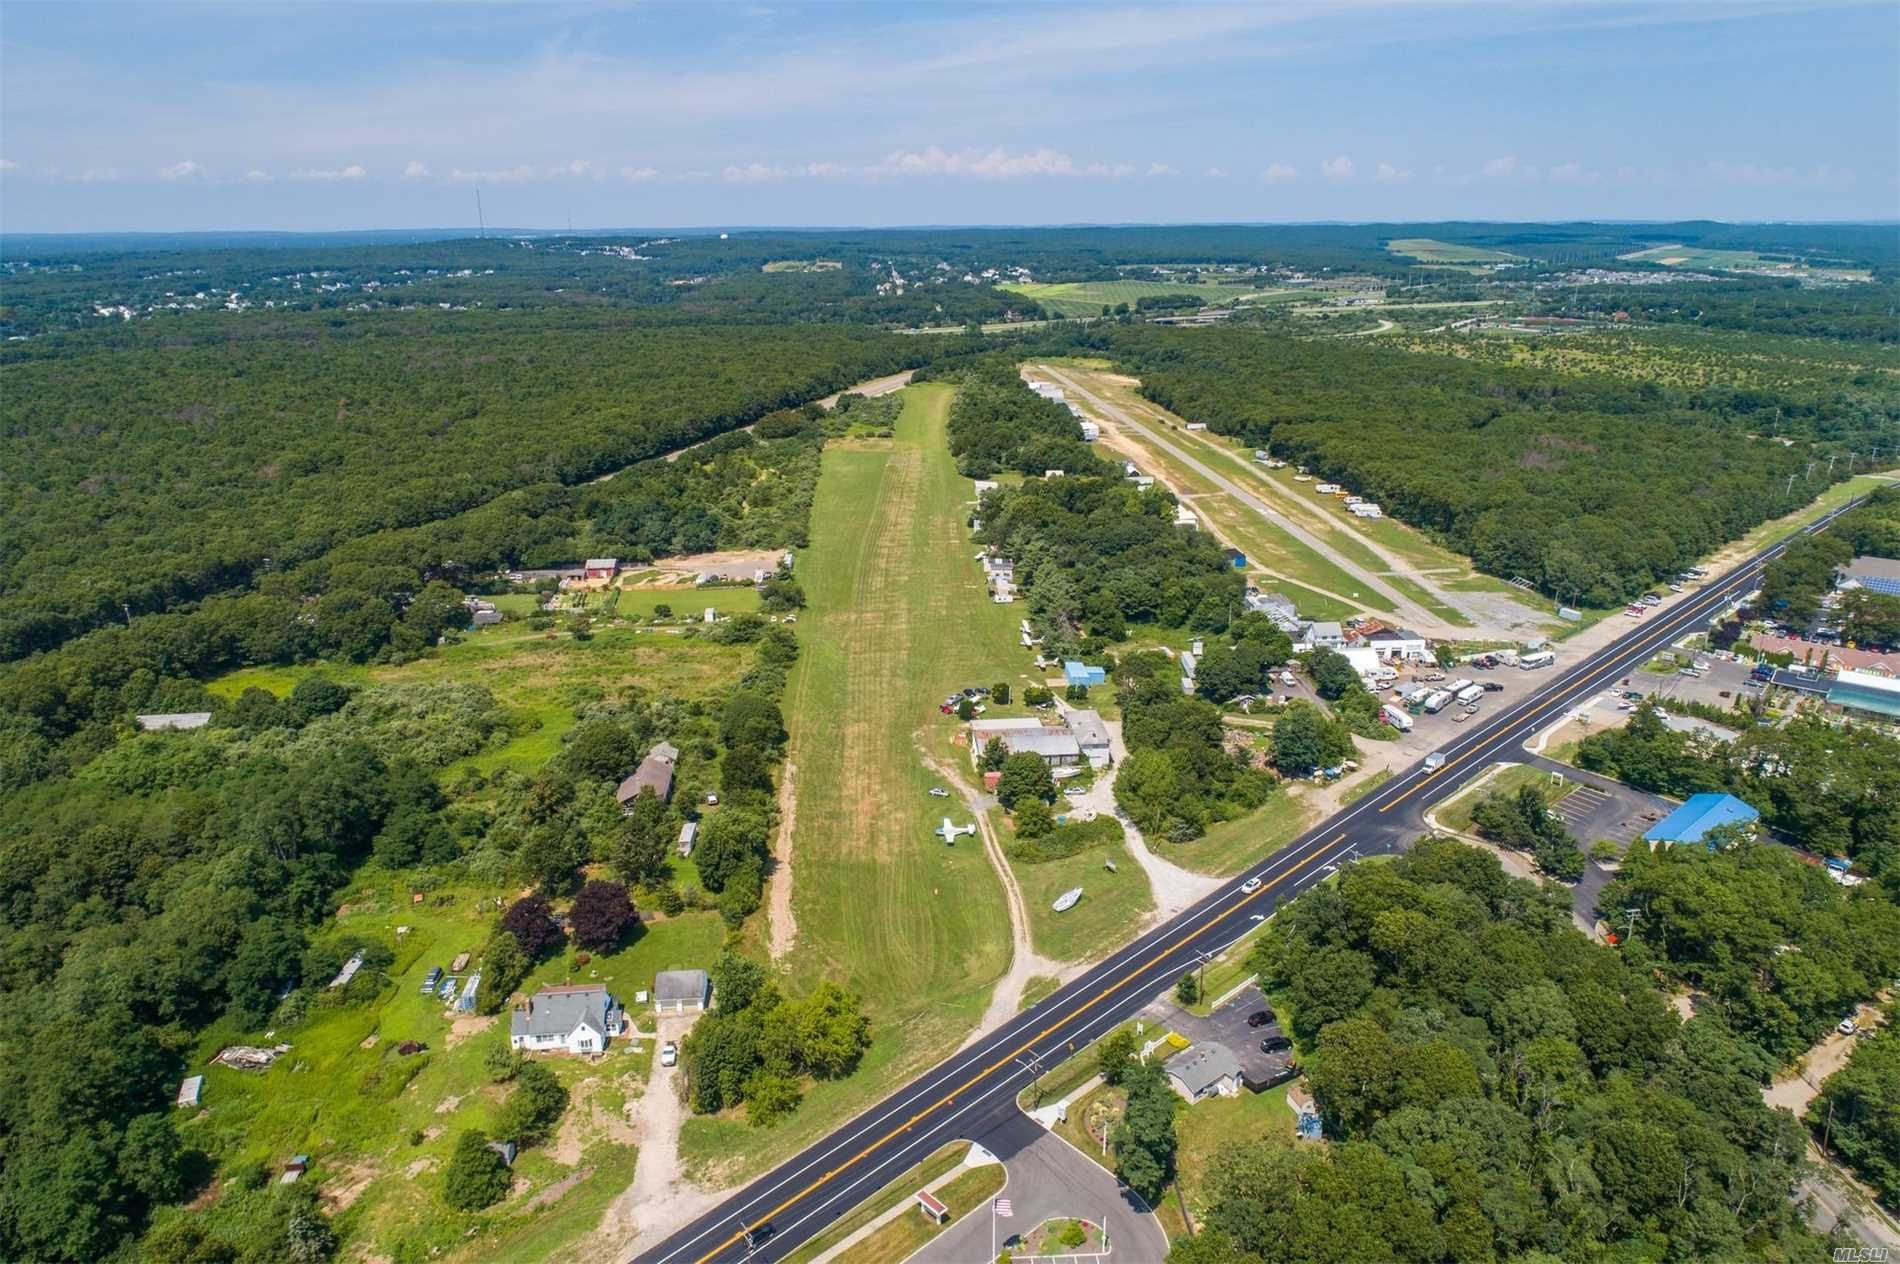 Single Family Home for Sale at East Moriches,NY,United States East Moriches, New York 11940 United States